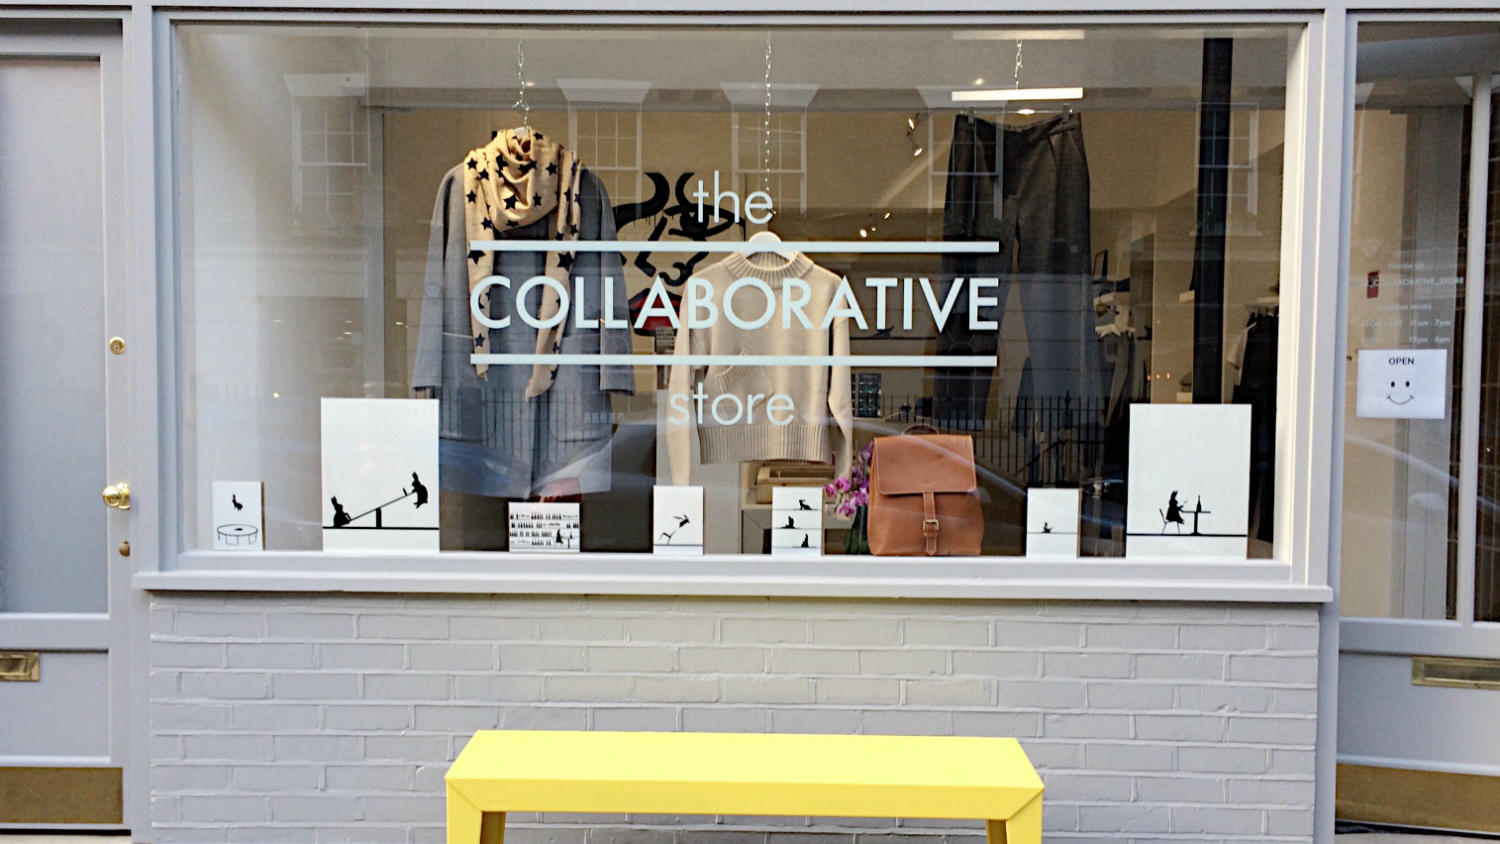 The Collaborative Store, 100 Best Shops 2017